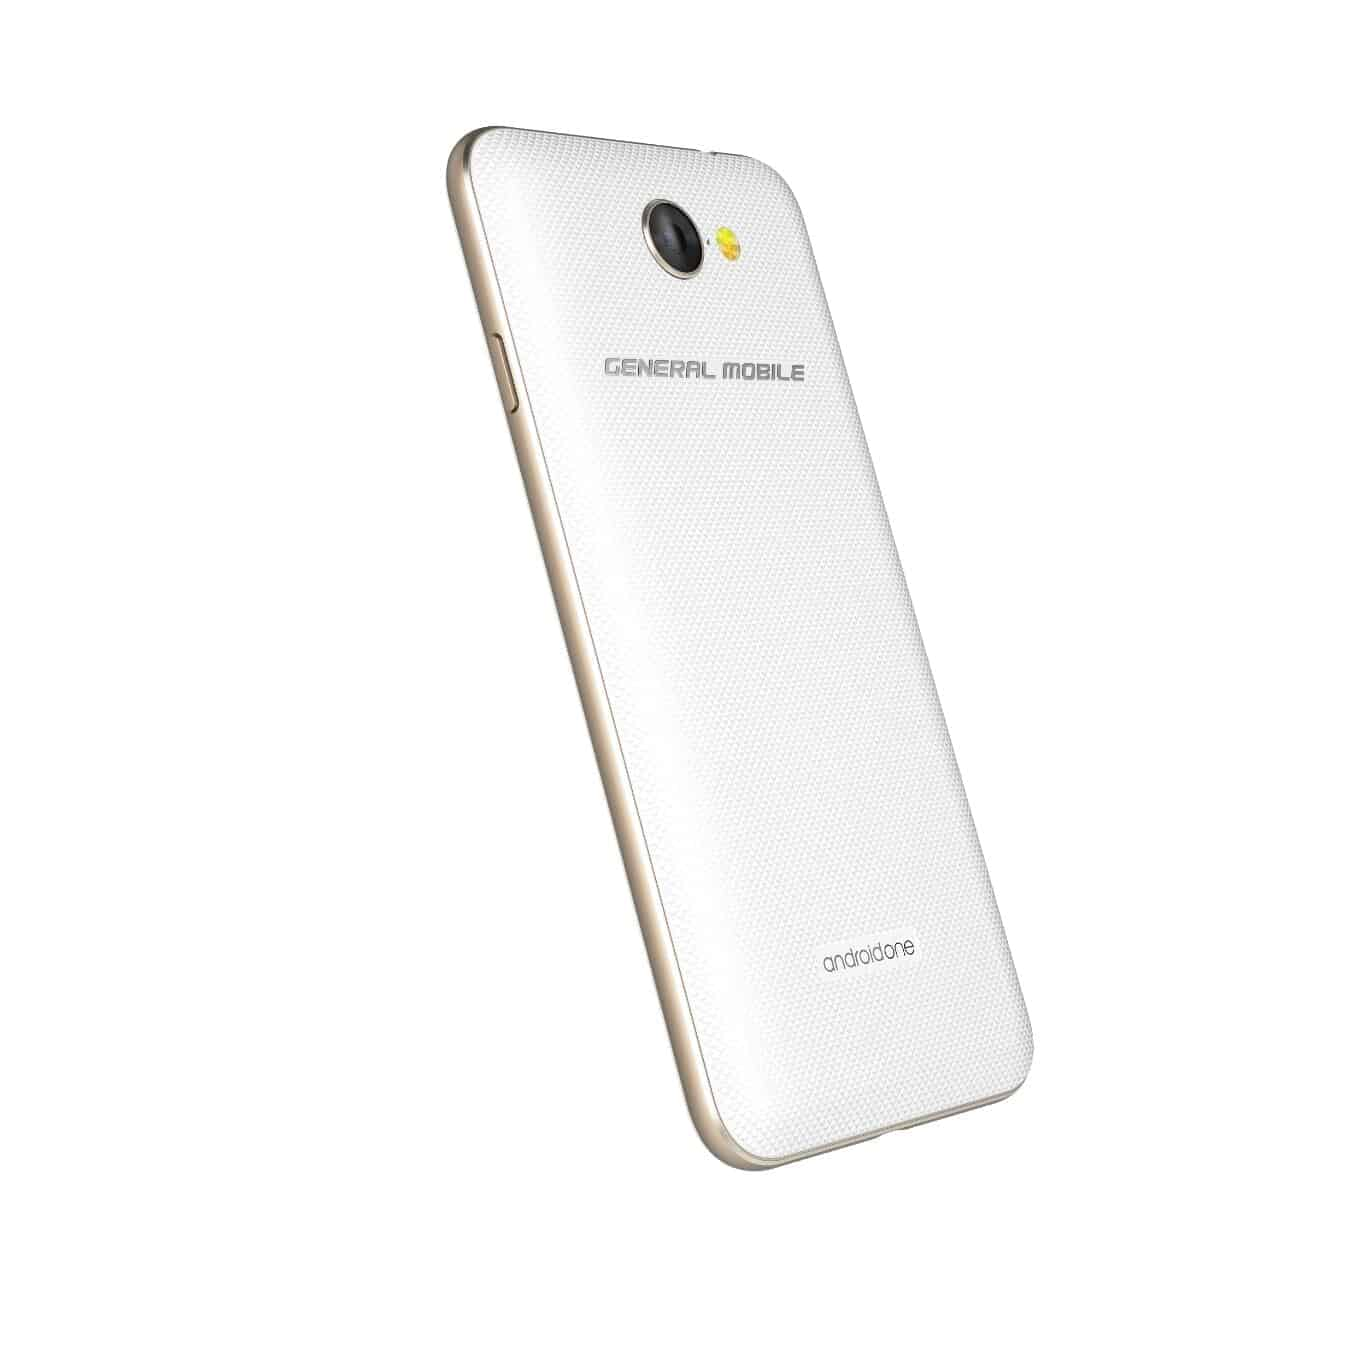 GM 6 Android One 16